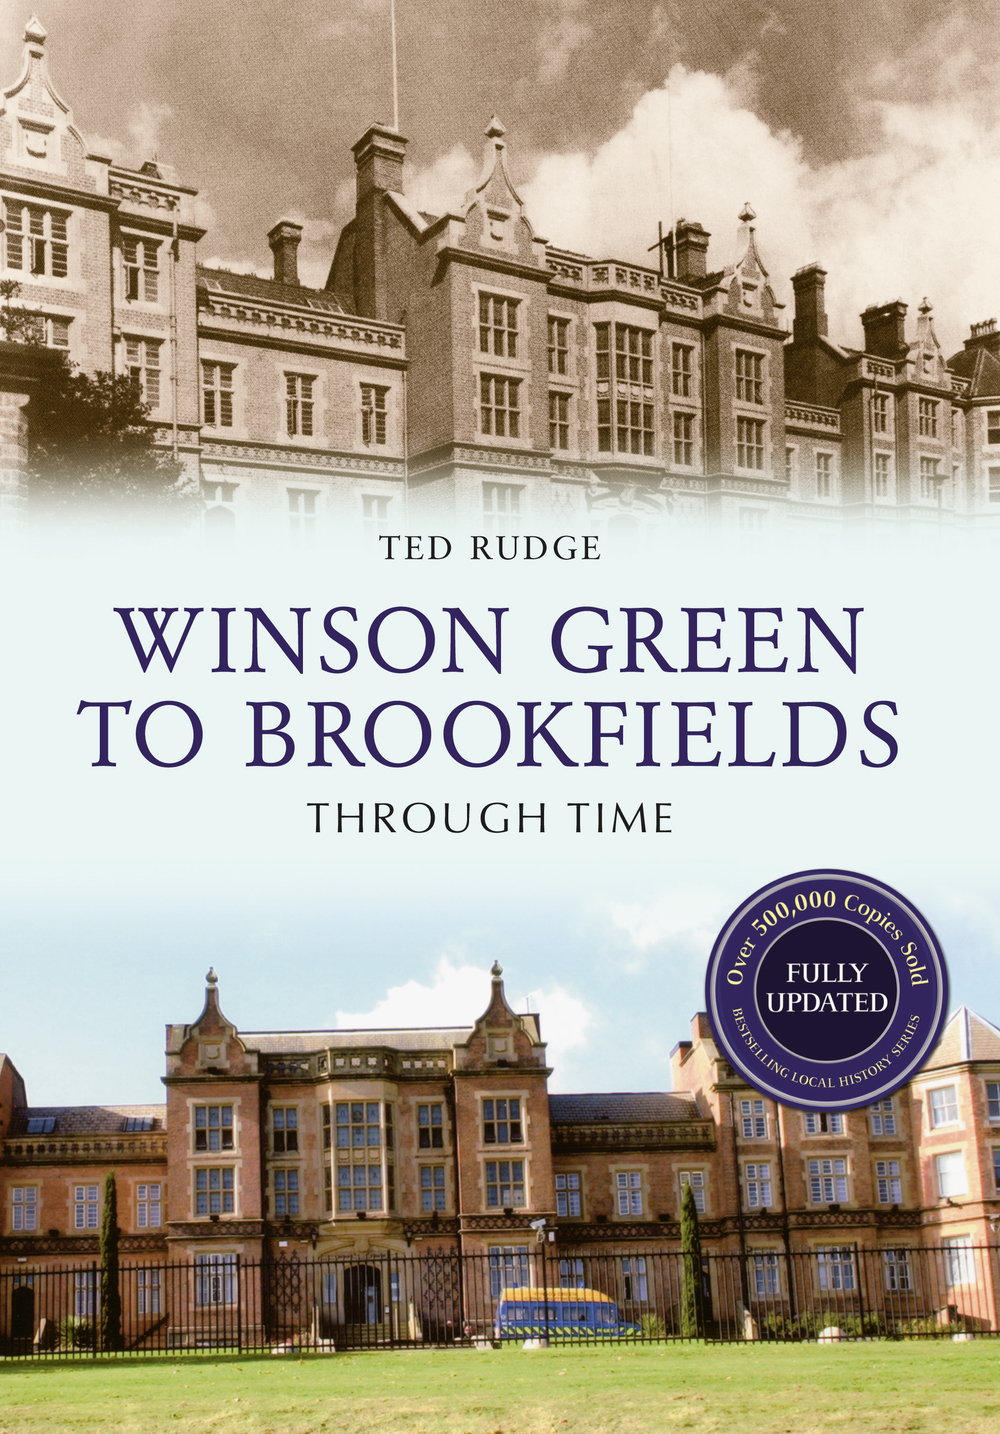 Winson Green cover copy.jpg